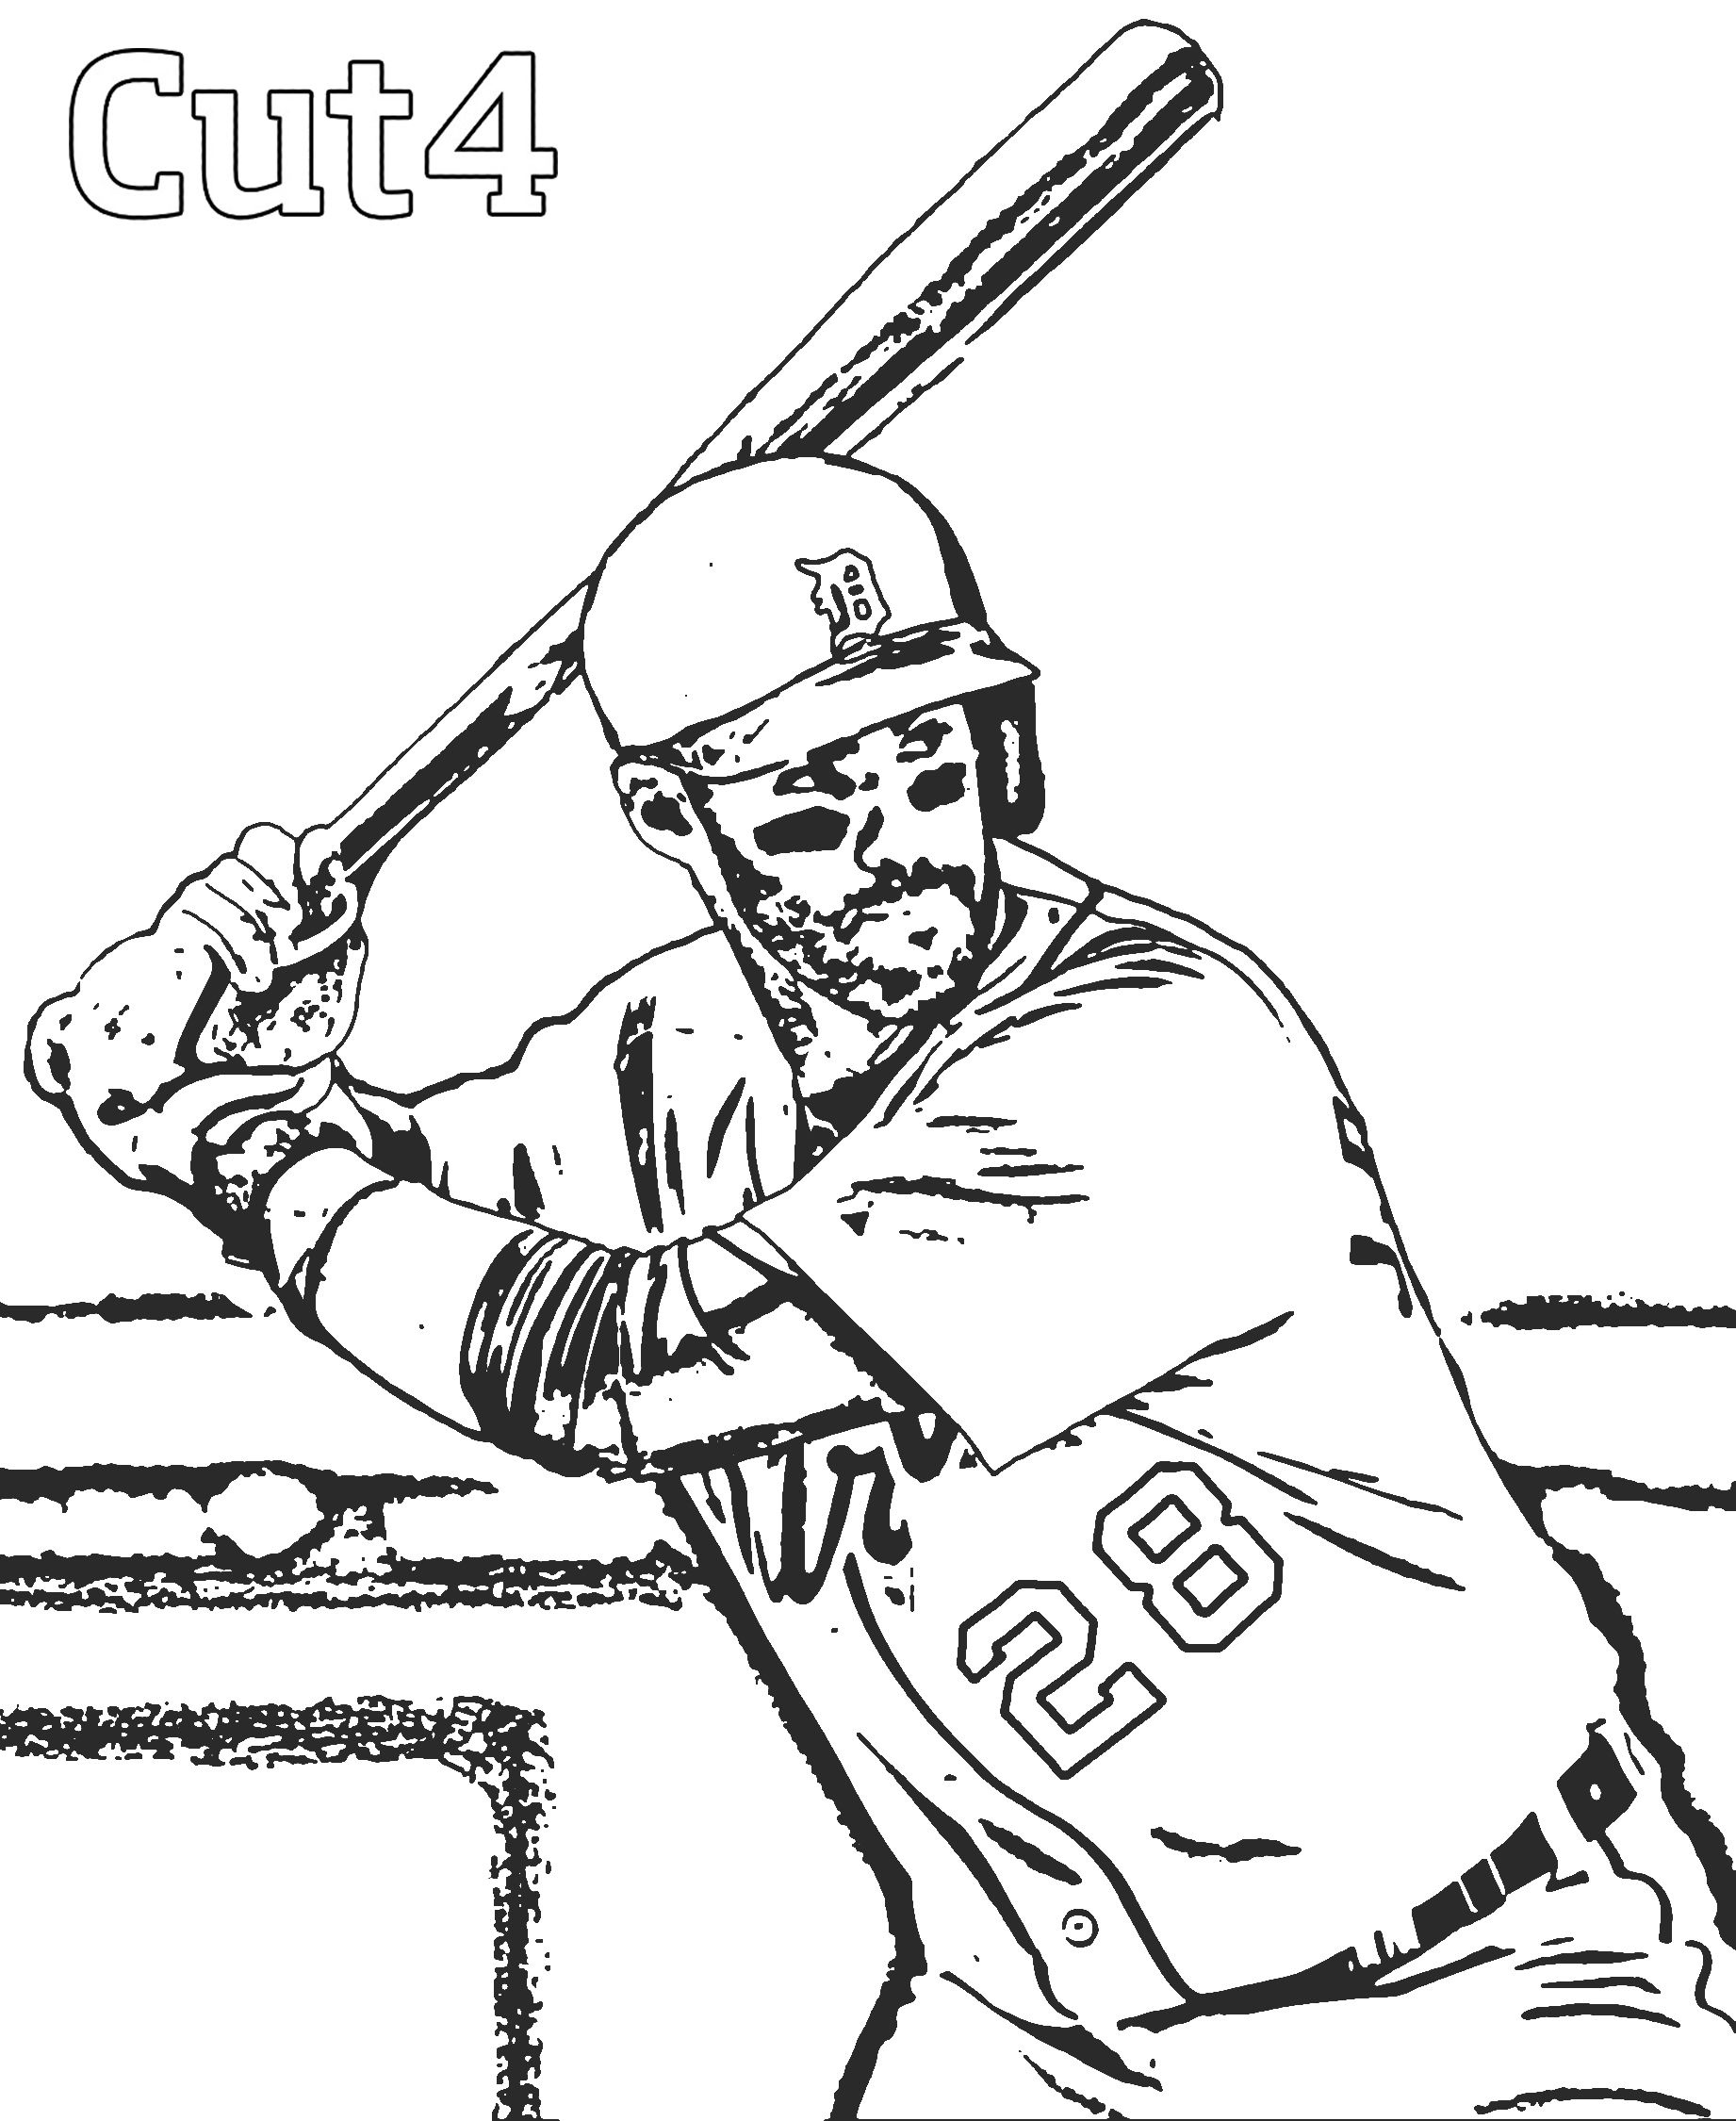 detroit tiger coloring pages - photo#29